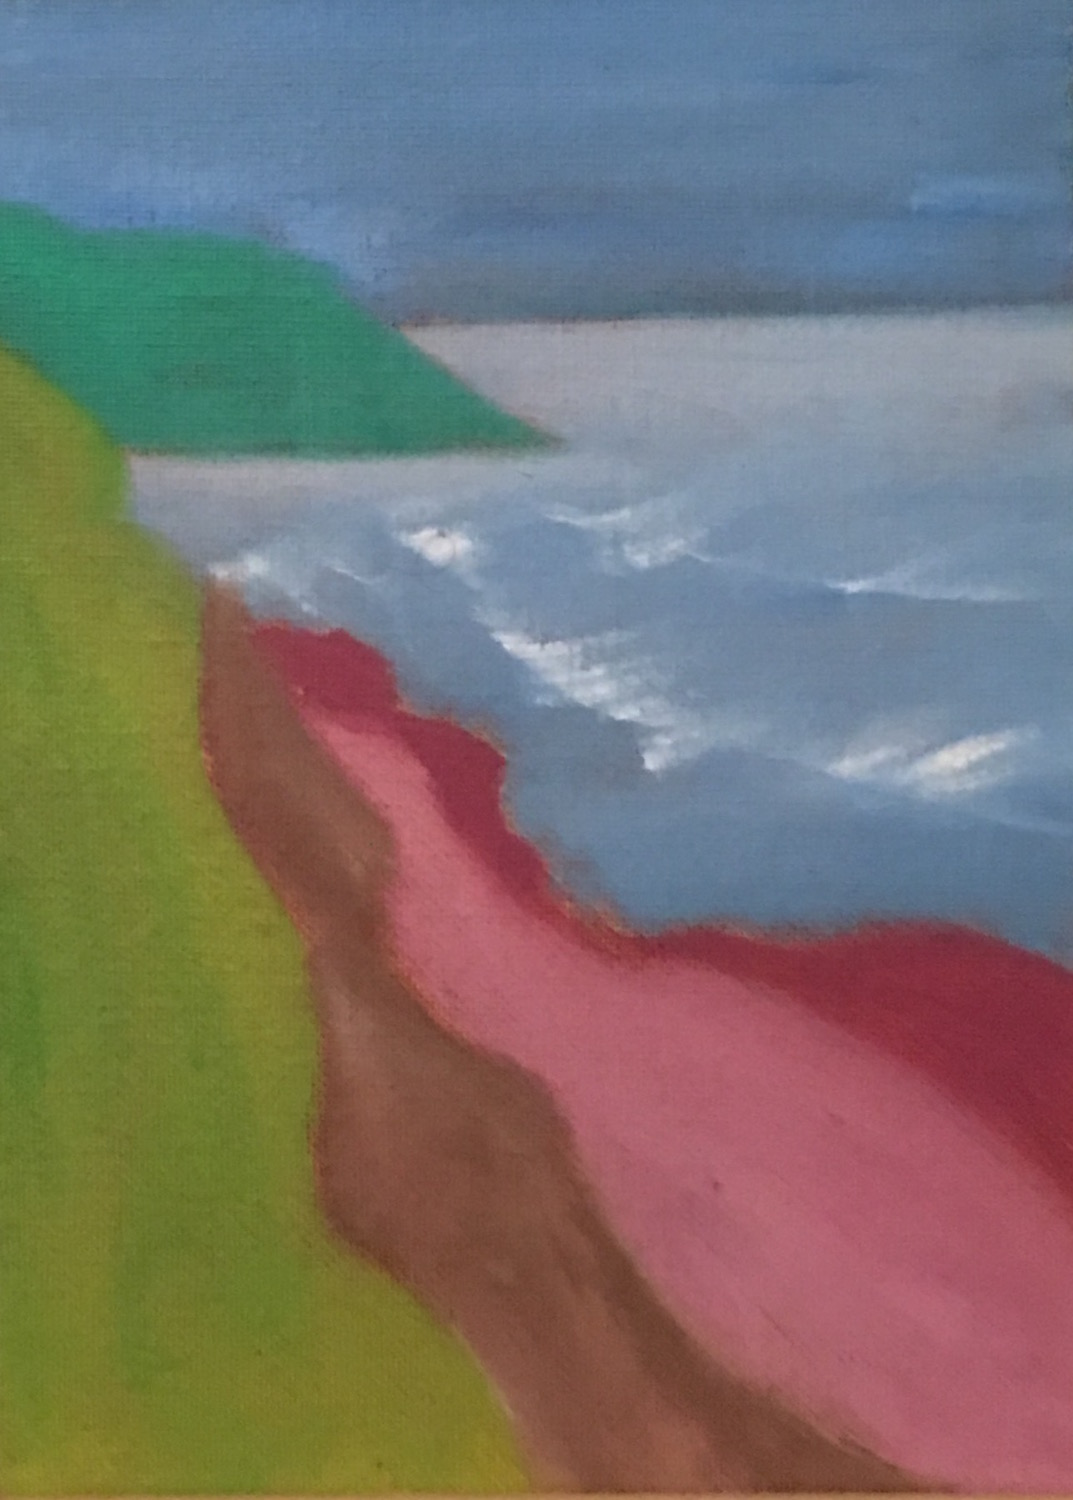 From the Top of the Dune - Oil on Canvas Panel6 x 8Now residing in New Hampshire